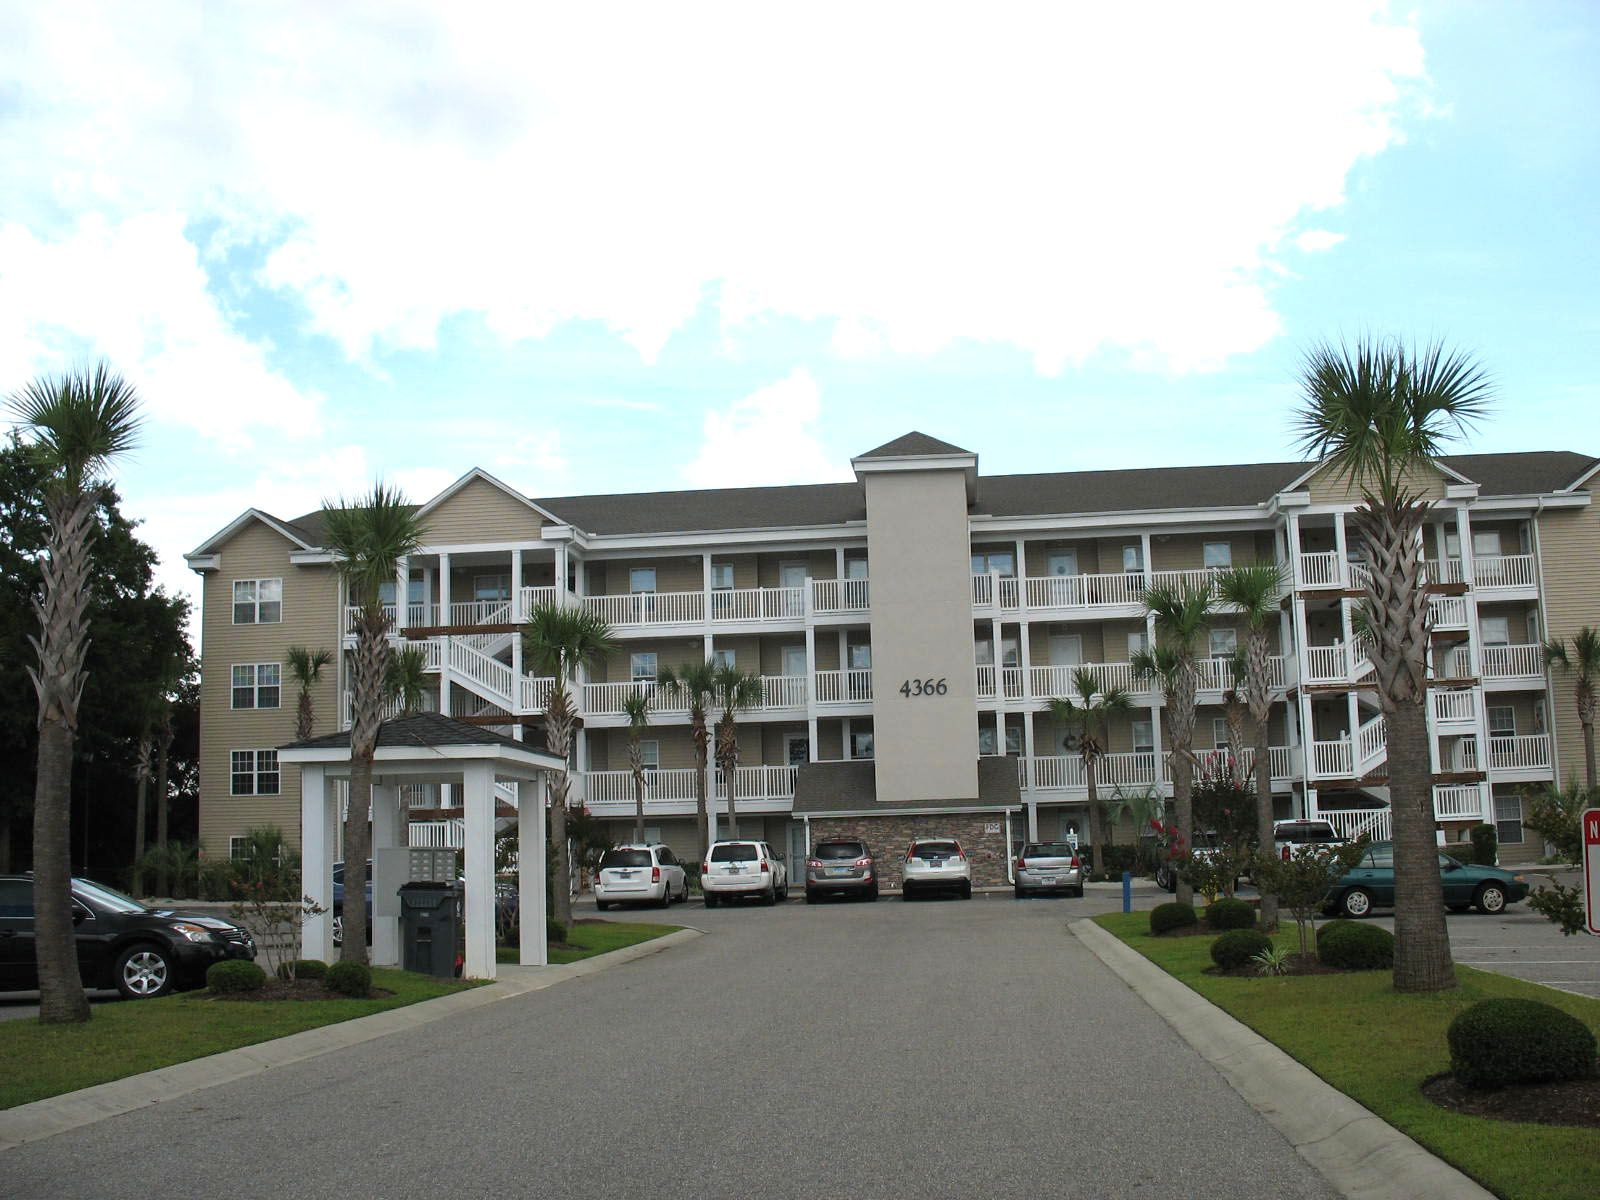 Whispering Woods condos Myrtle beach real estate, Condo